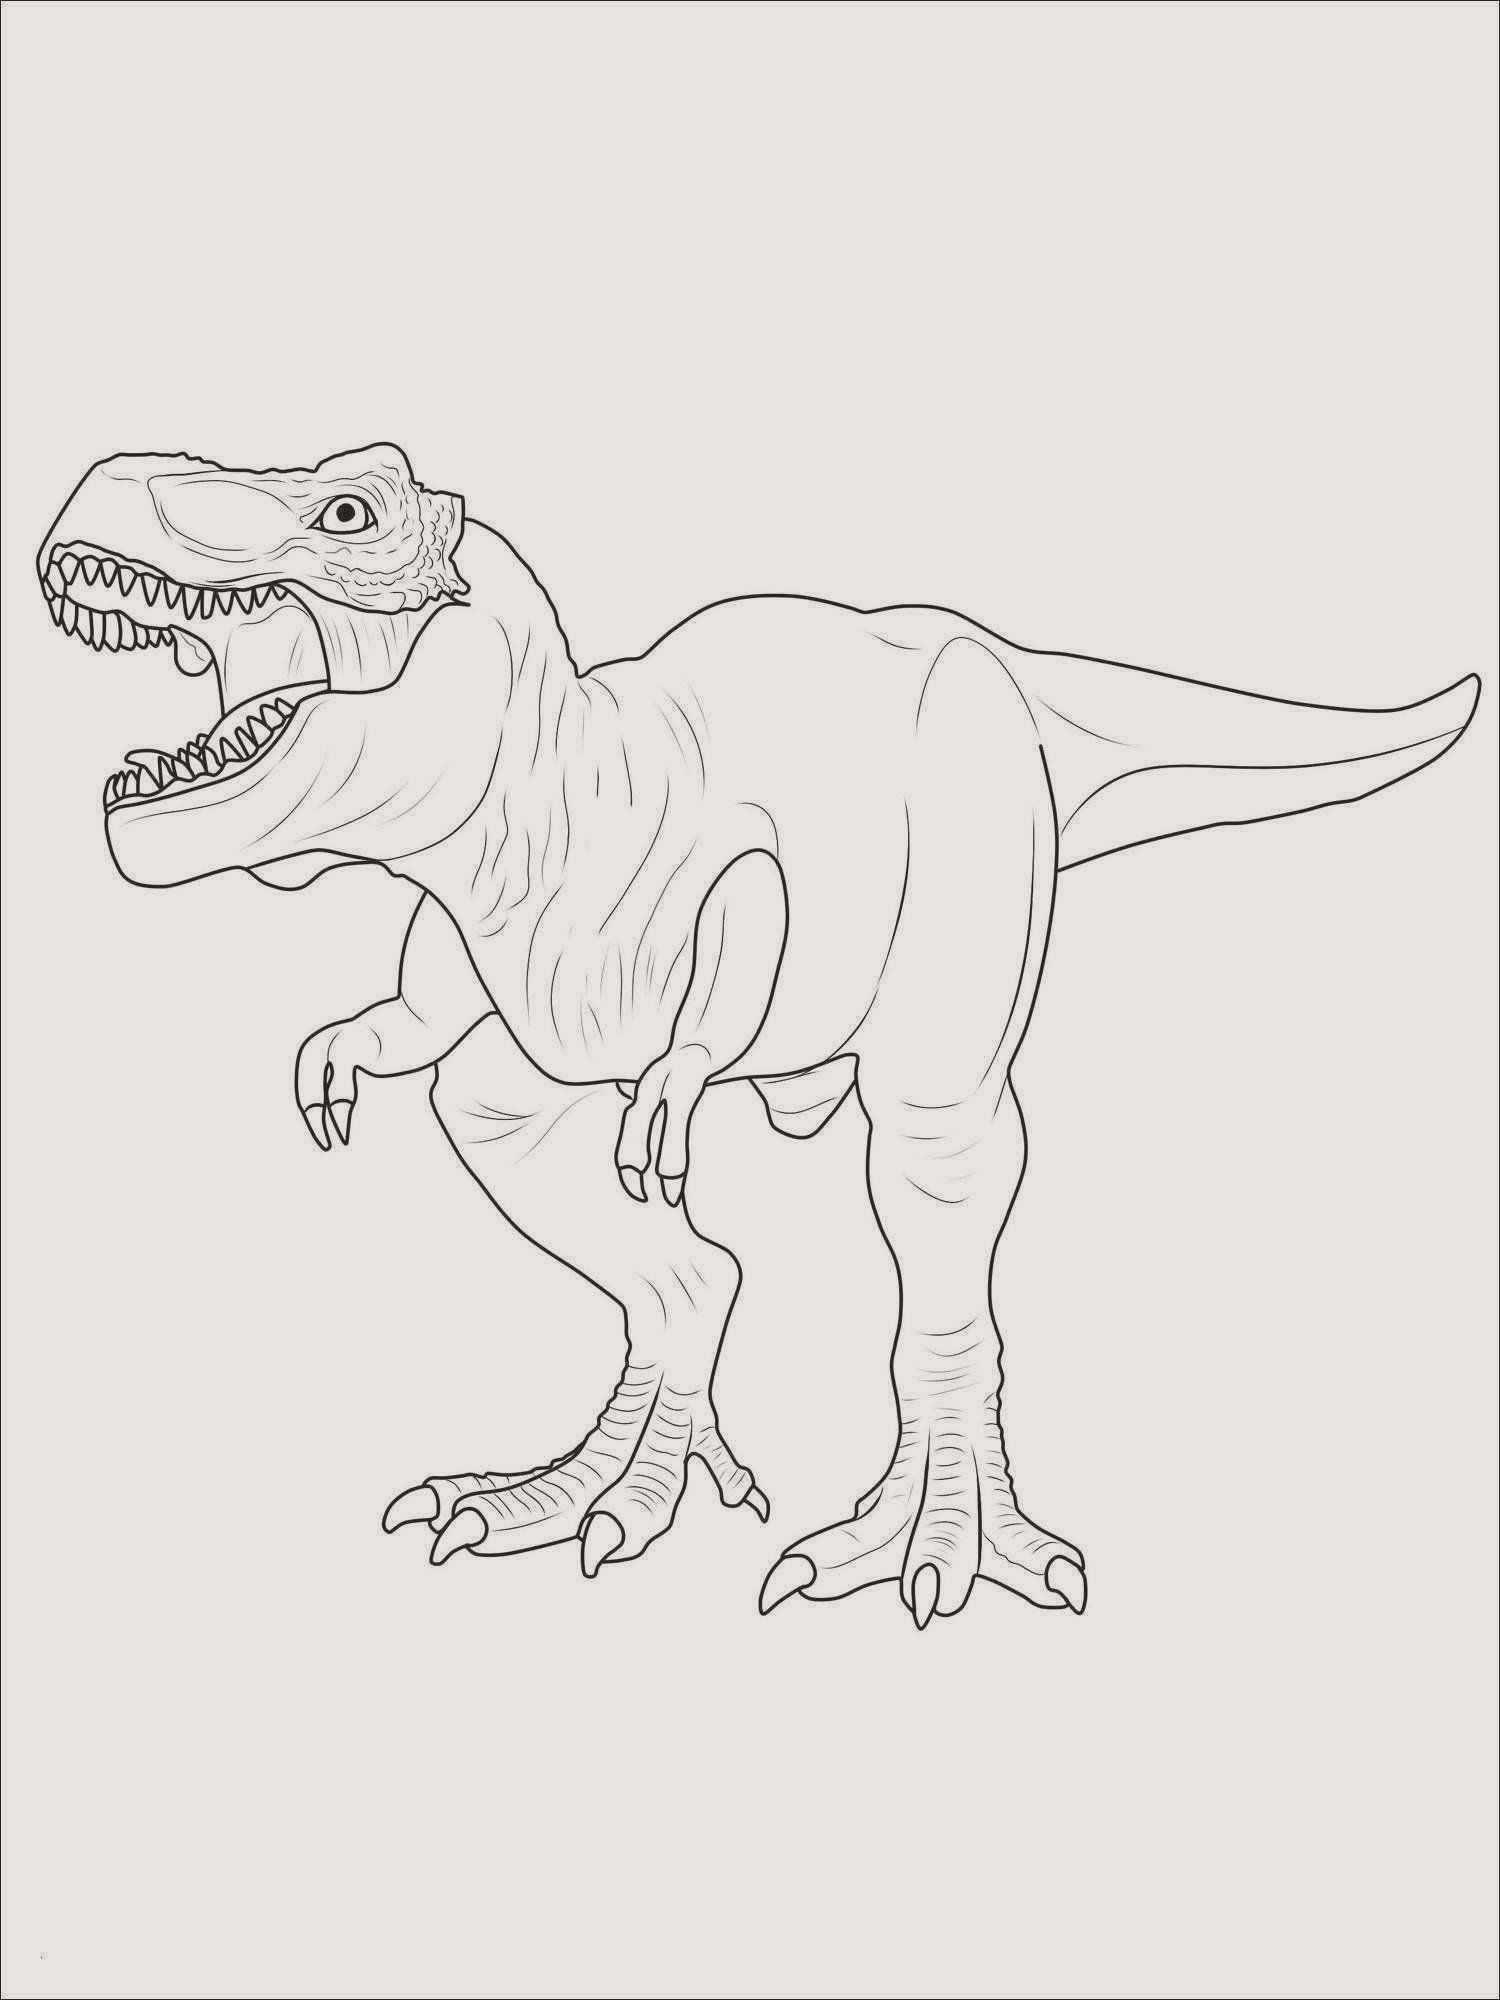 T Rex Coloring Pages Best Of 30 Neu Tyrannosaurus Rex Ausmalbilder Ausdrucken Dinosaur Coloring Pages Dinosaur Coloring Coloring Pages For Kids